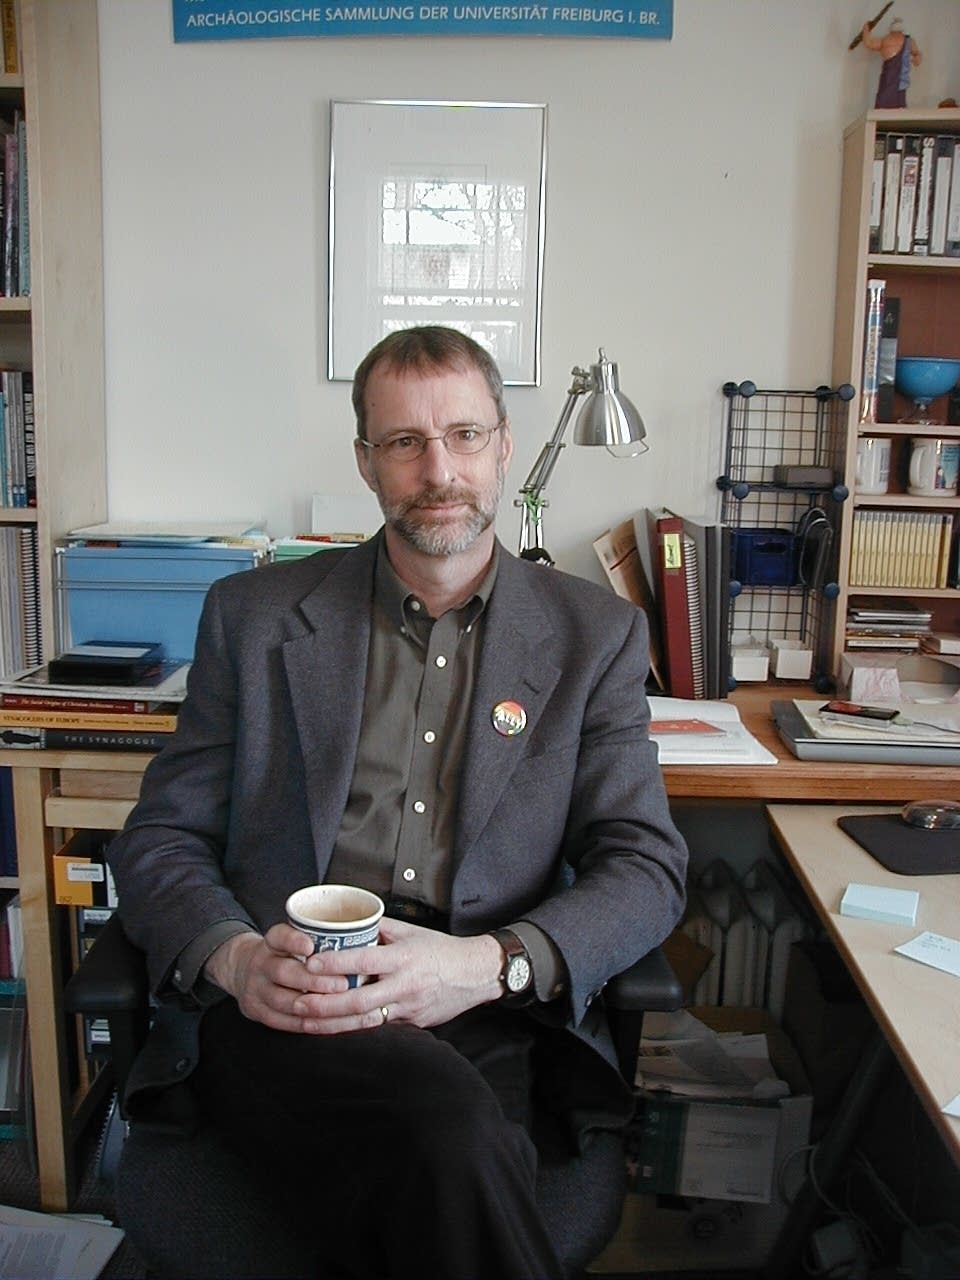 Professor Stansbury O'Donnell